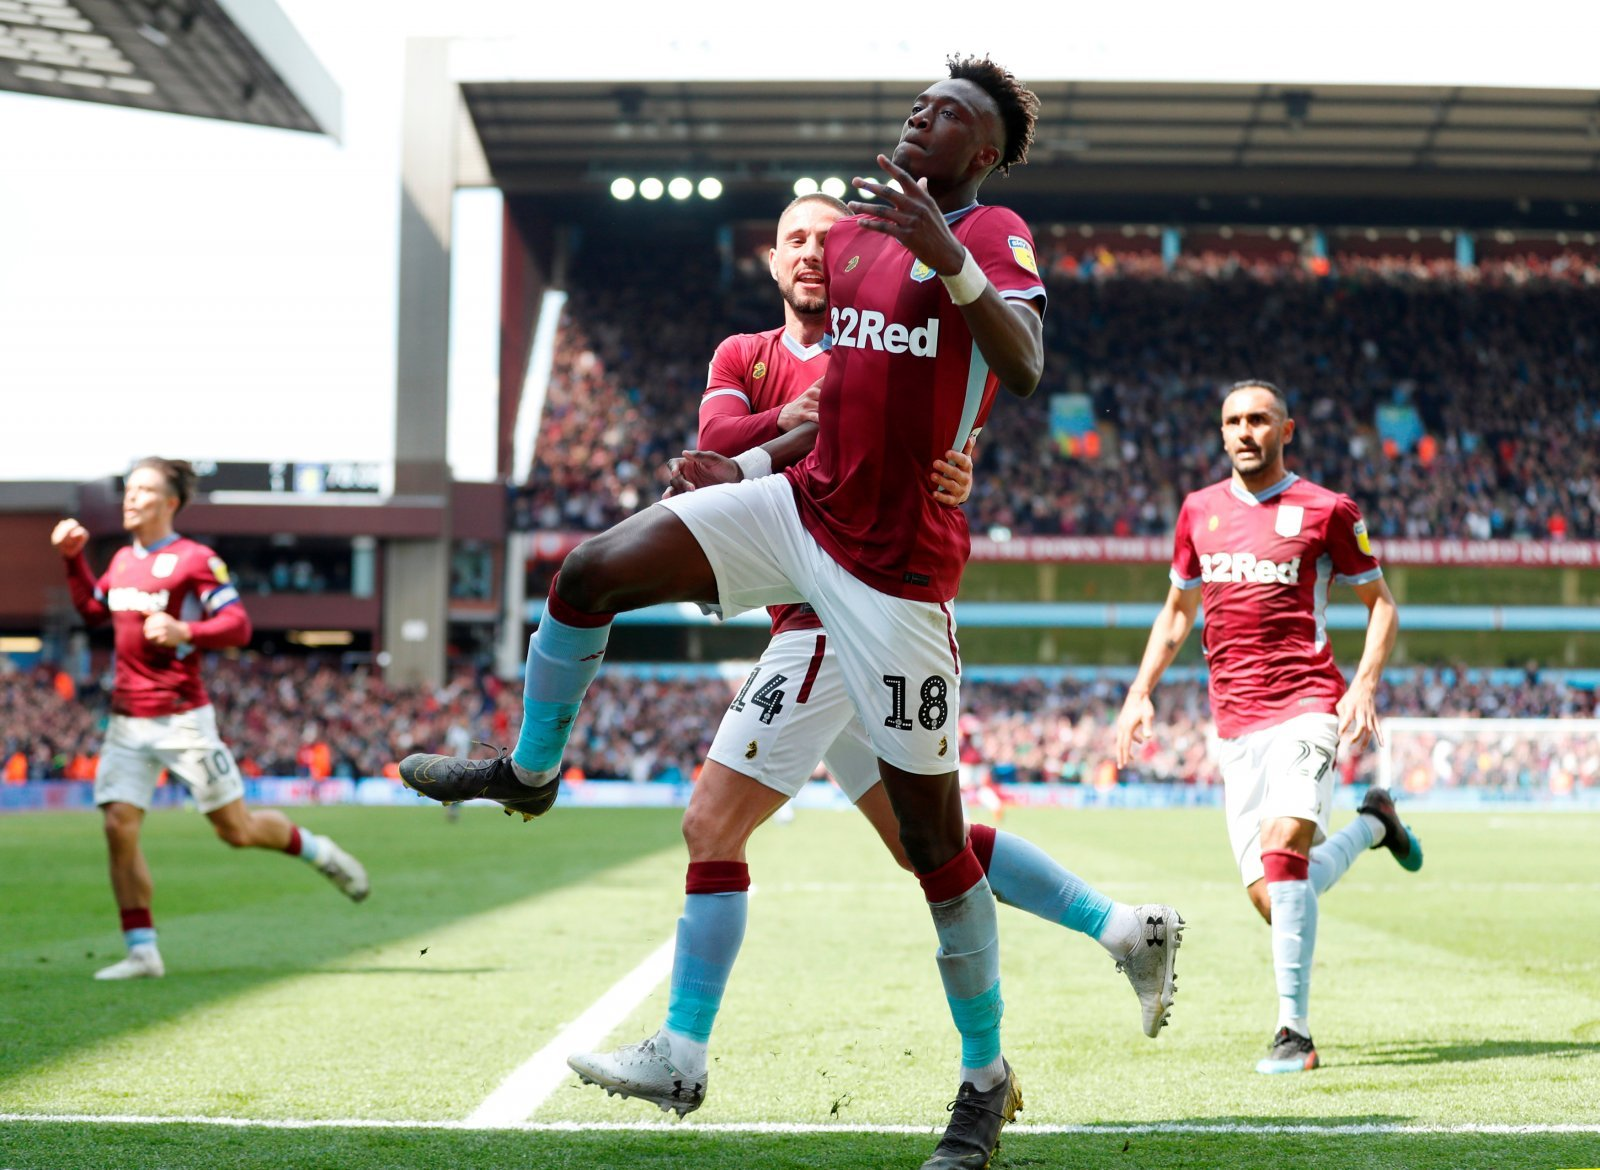 Chelsea: Tammy Abraham quite literally is the future